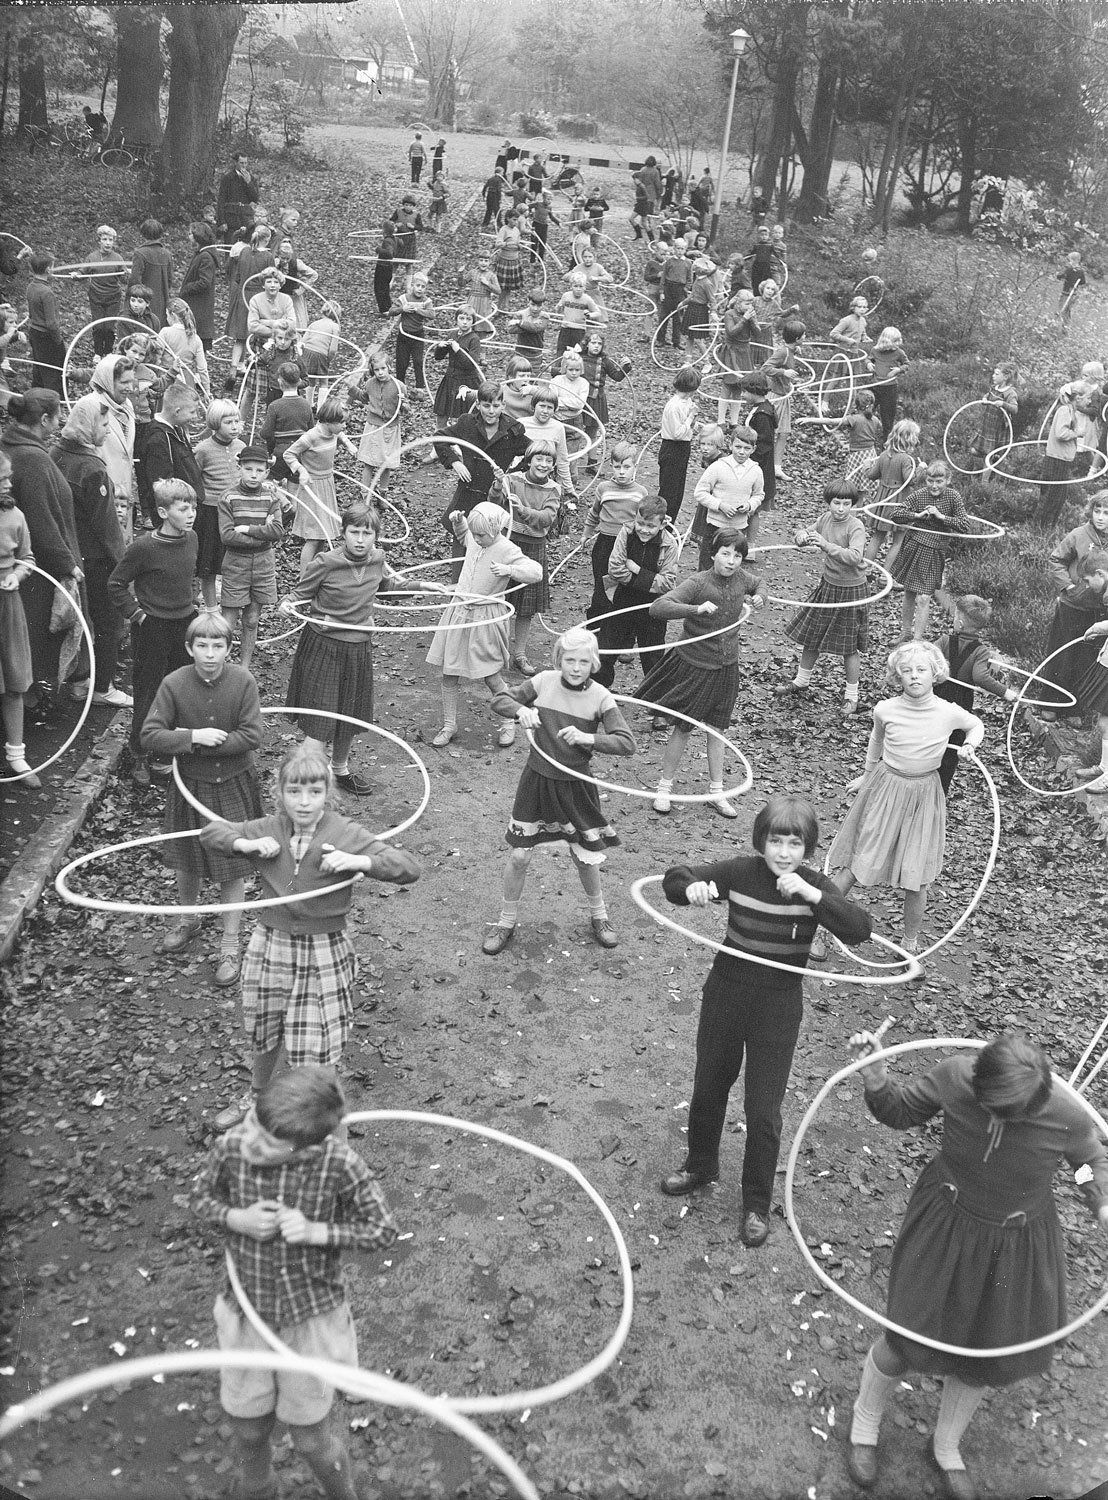 In The Netherlands too, the hula-hoop has become all the rage, 1958, Jacques Stevens, Gooi en Vecht Historisch, CC BY-SA